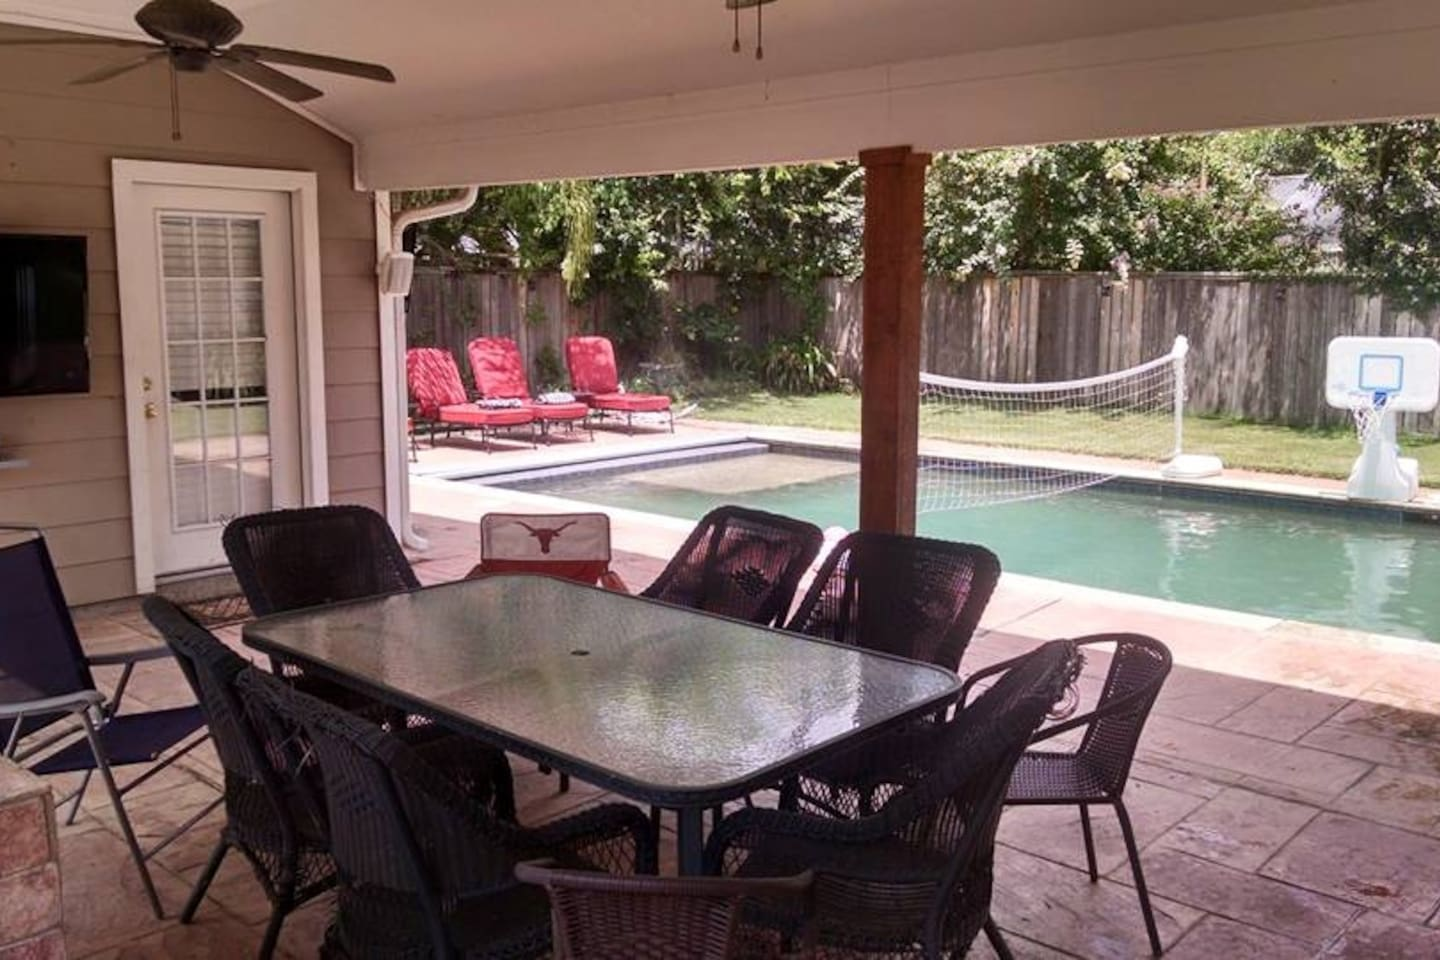 backyard pool & patio, complete with tv and surround sound speakers. great for watching the game